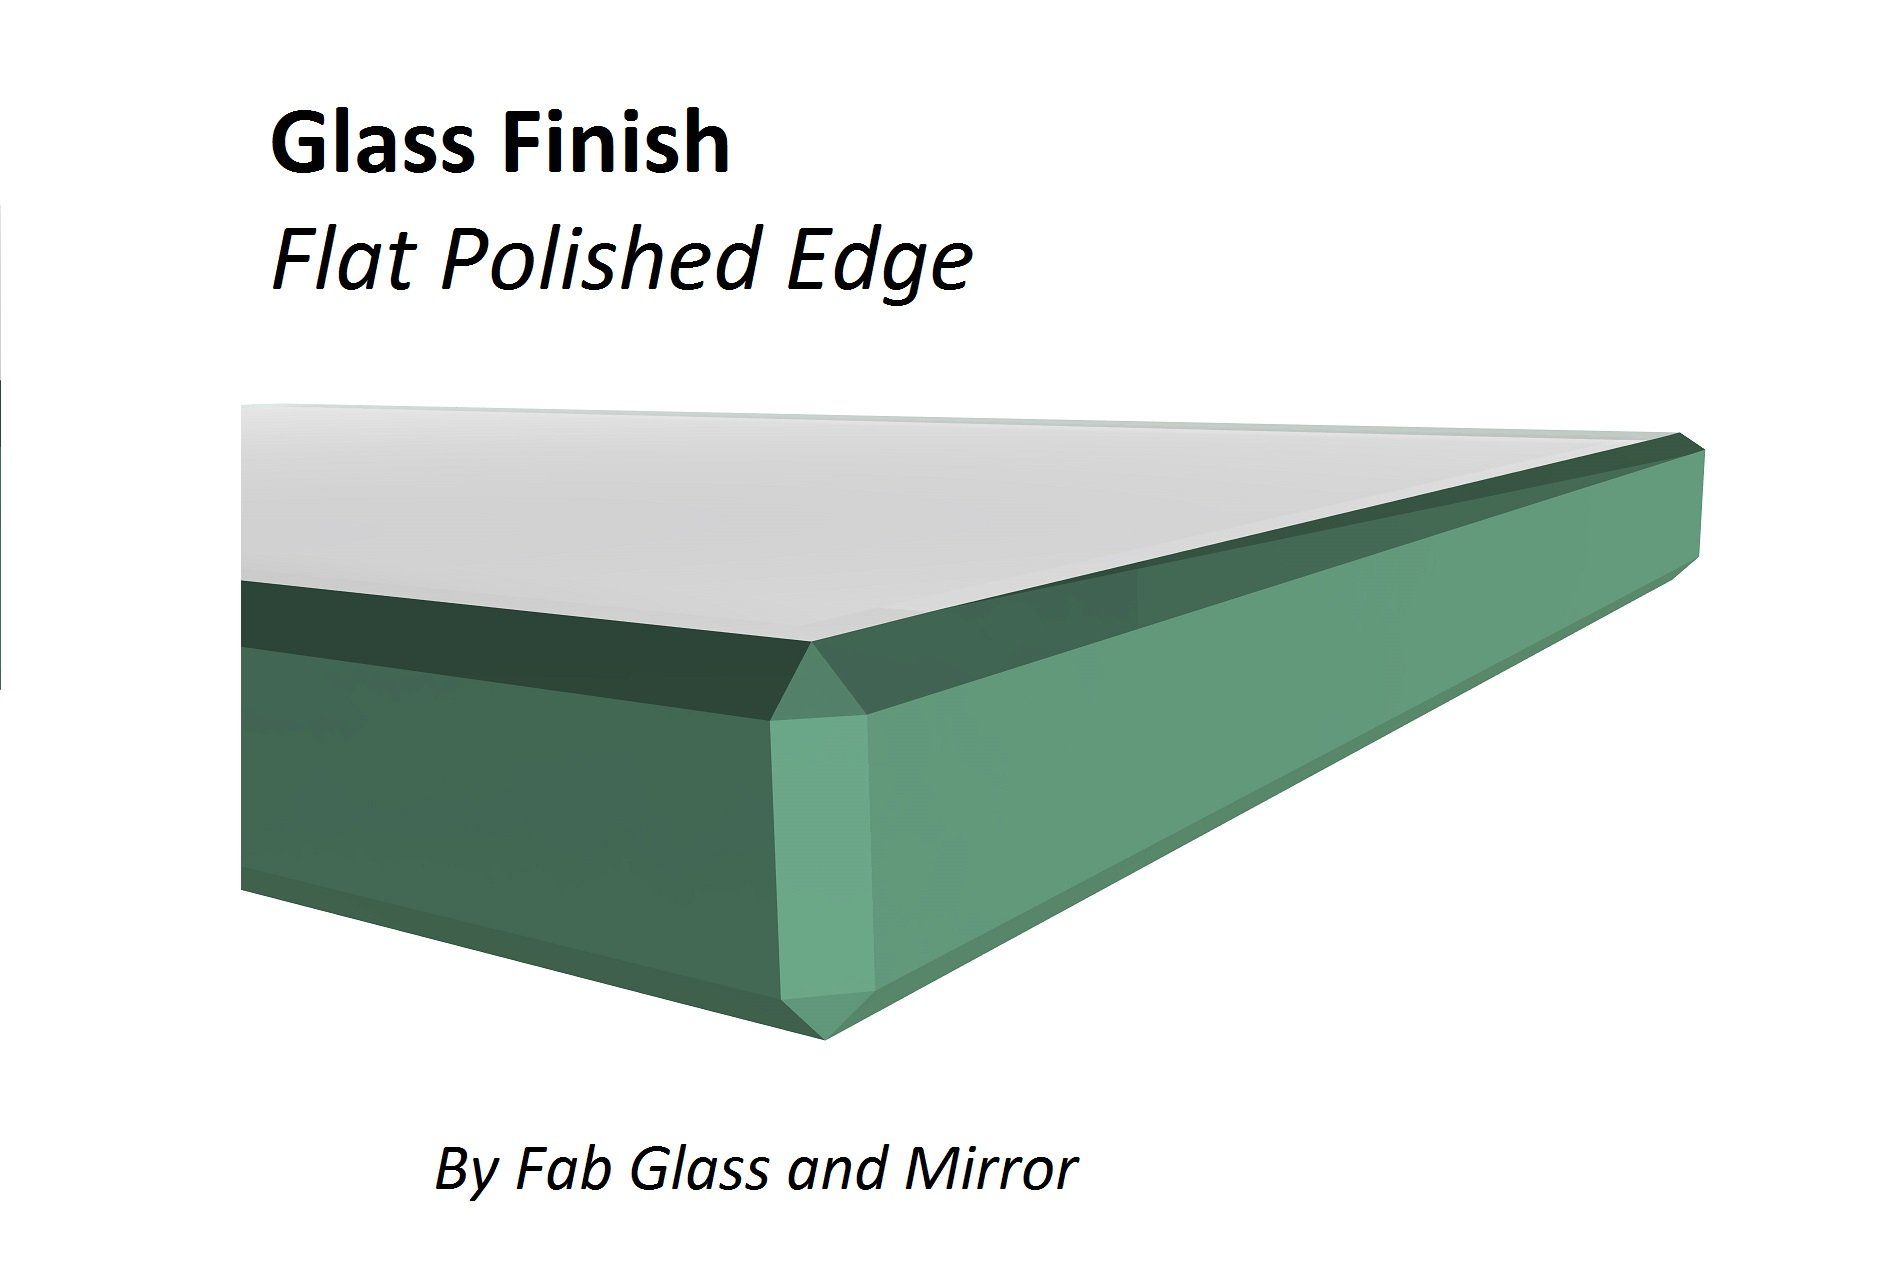 Fab Glass and Mirror 20SQR6THFLTE 20'' Inch Square 1/4'' Thick Flat Polish Tempered Eased Corners Glass Table Top 20 Inch Clear by Fab Glass and Mirror (Image #1)